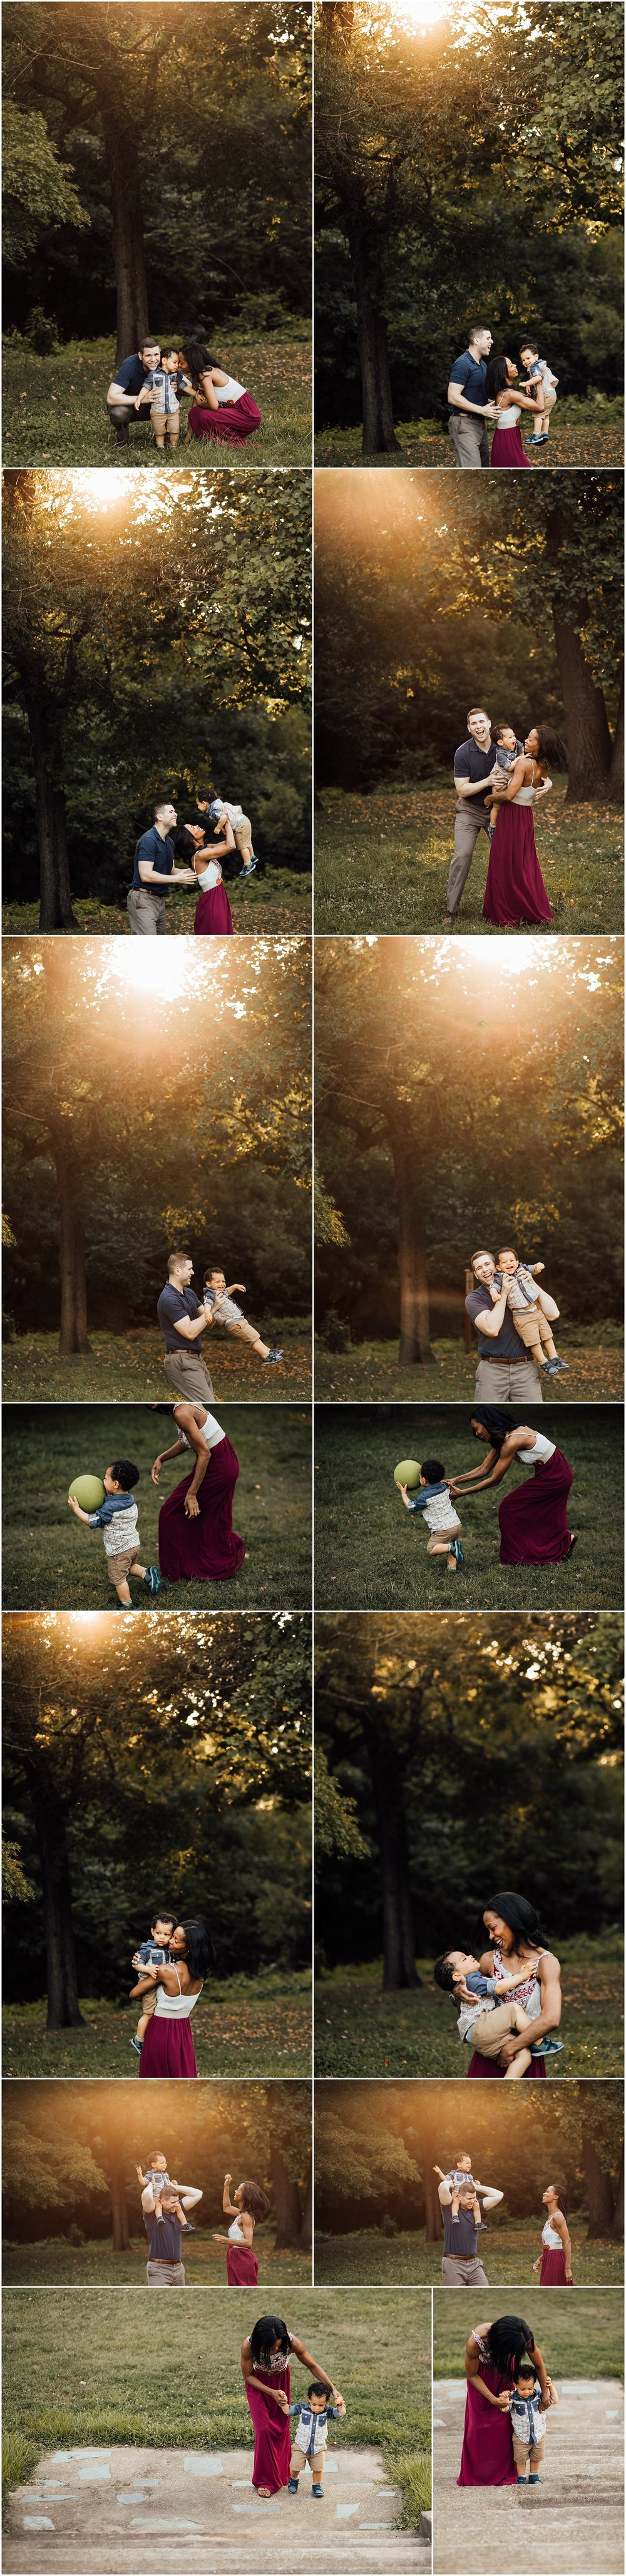 Family on location photo session with toddler  by Madison Alabama family photographer Rachel K Photo